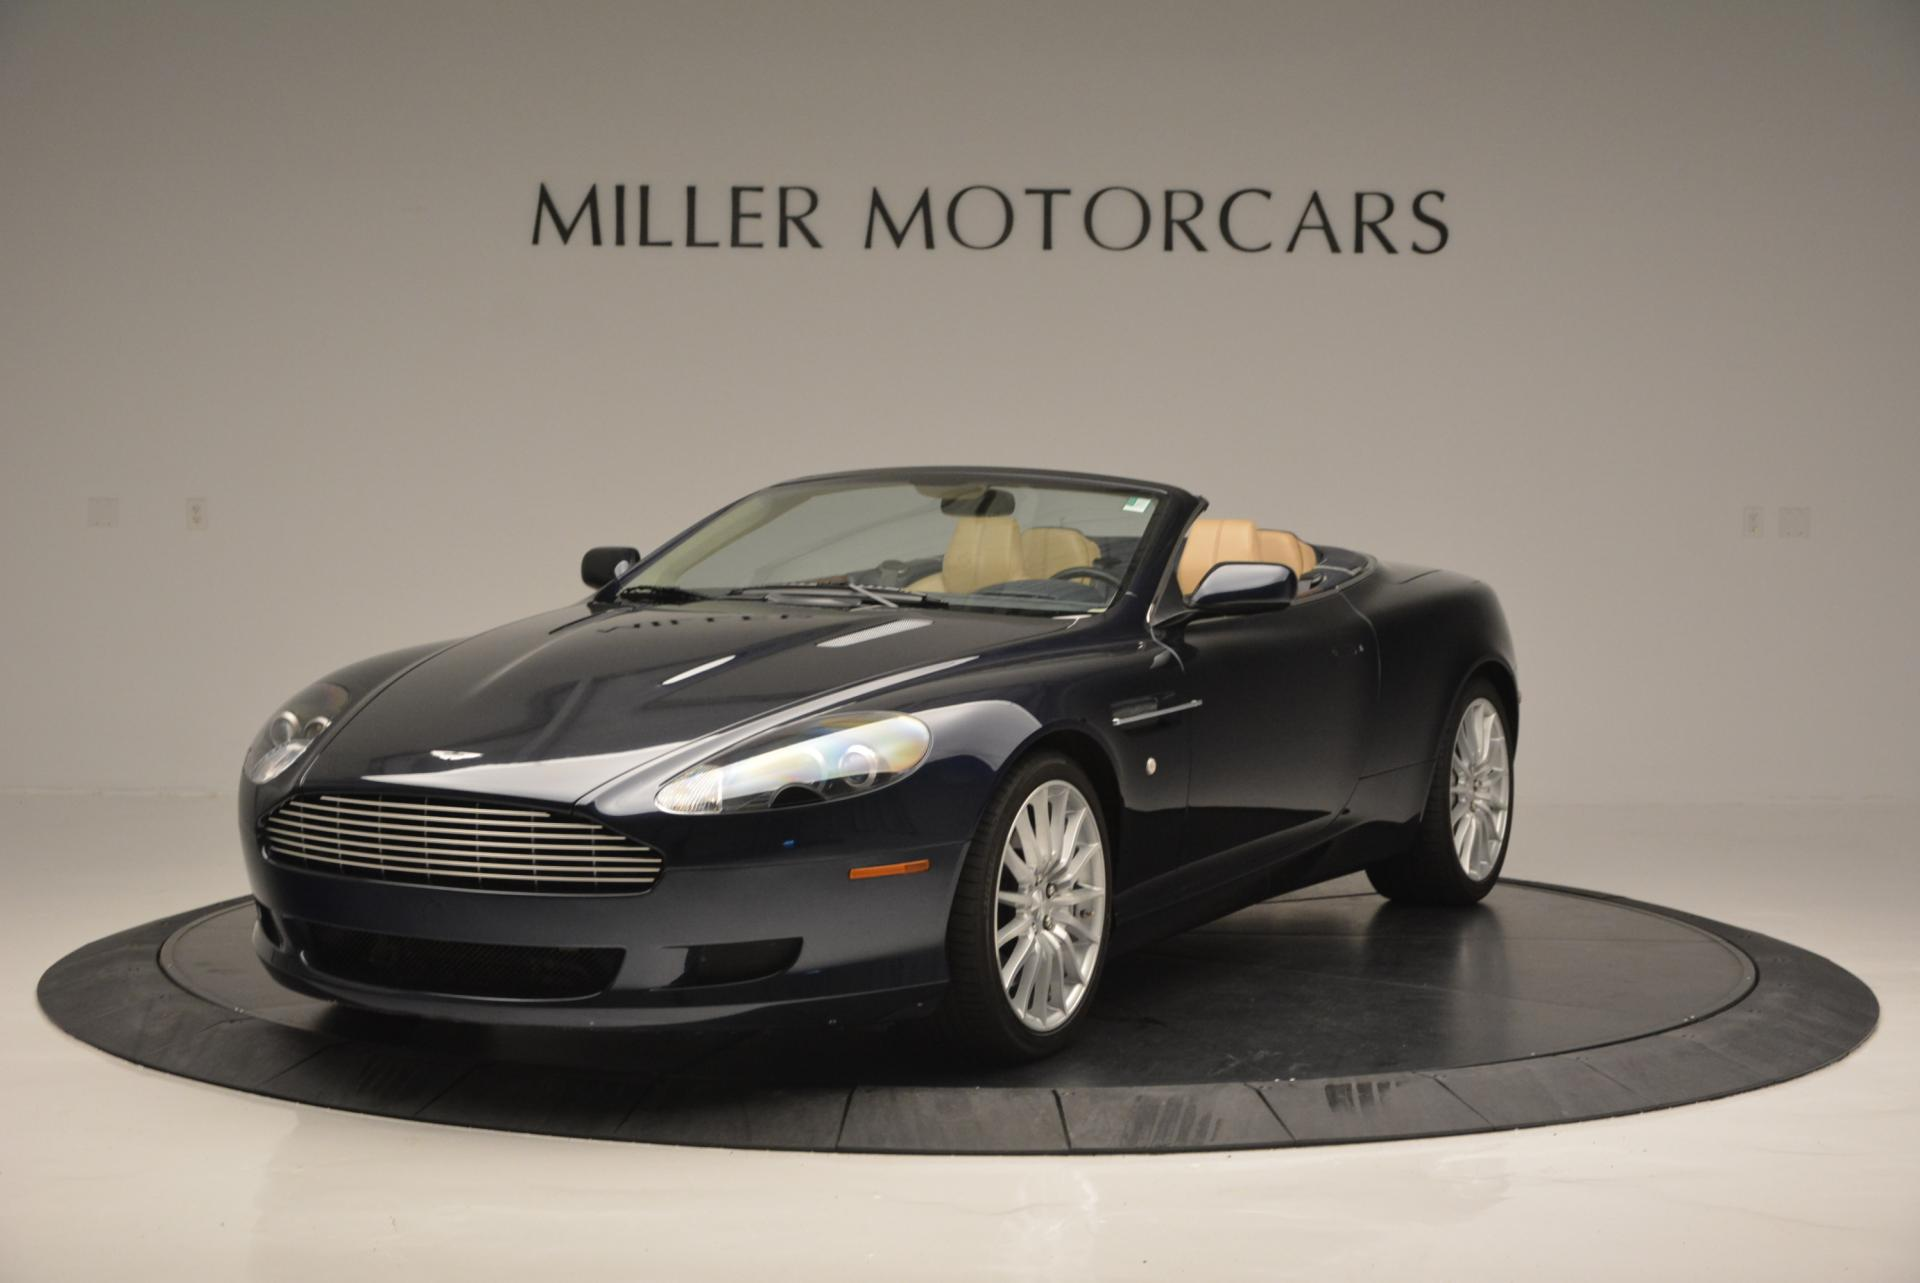 Used 2007 Aston Martin DB9 Volante for sale Sold at Aston Martin of Greenwich in Greenwich CT 06830 1